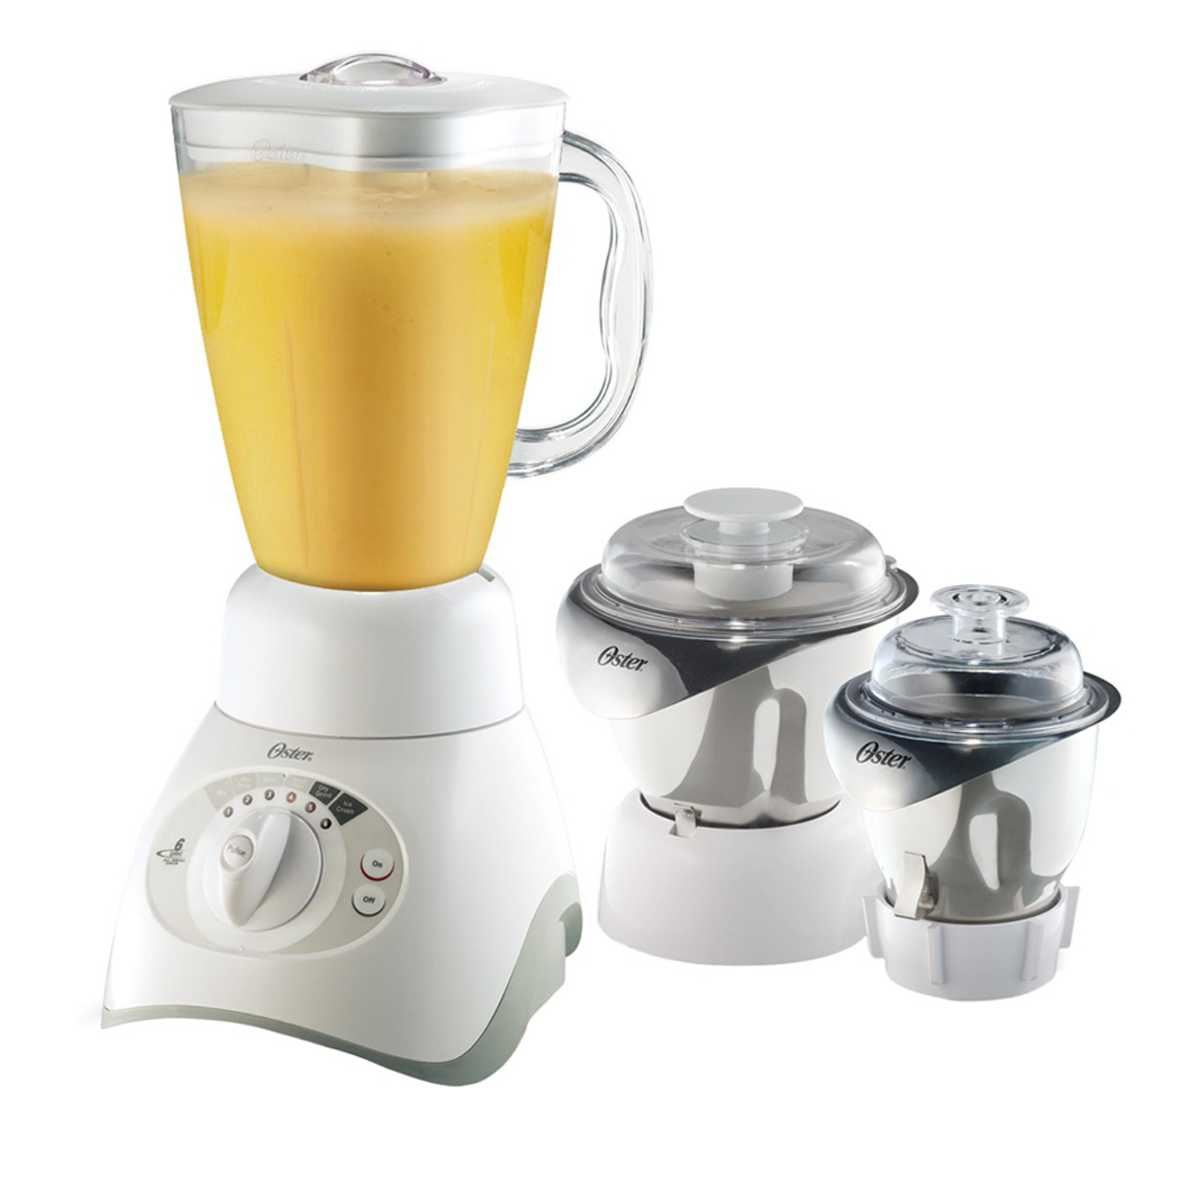 Picture of Oster Mixer Grinder MGSTSL 5000 Revamp